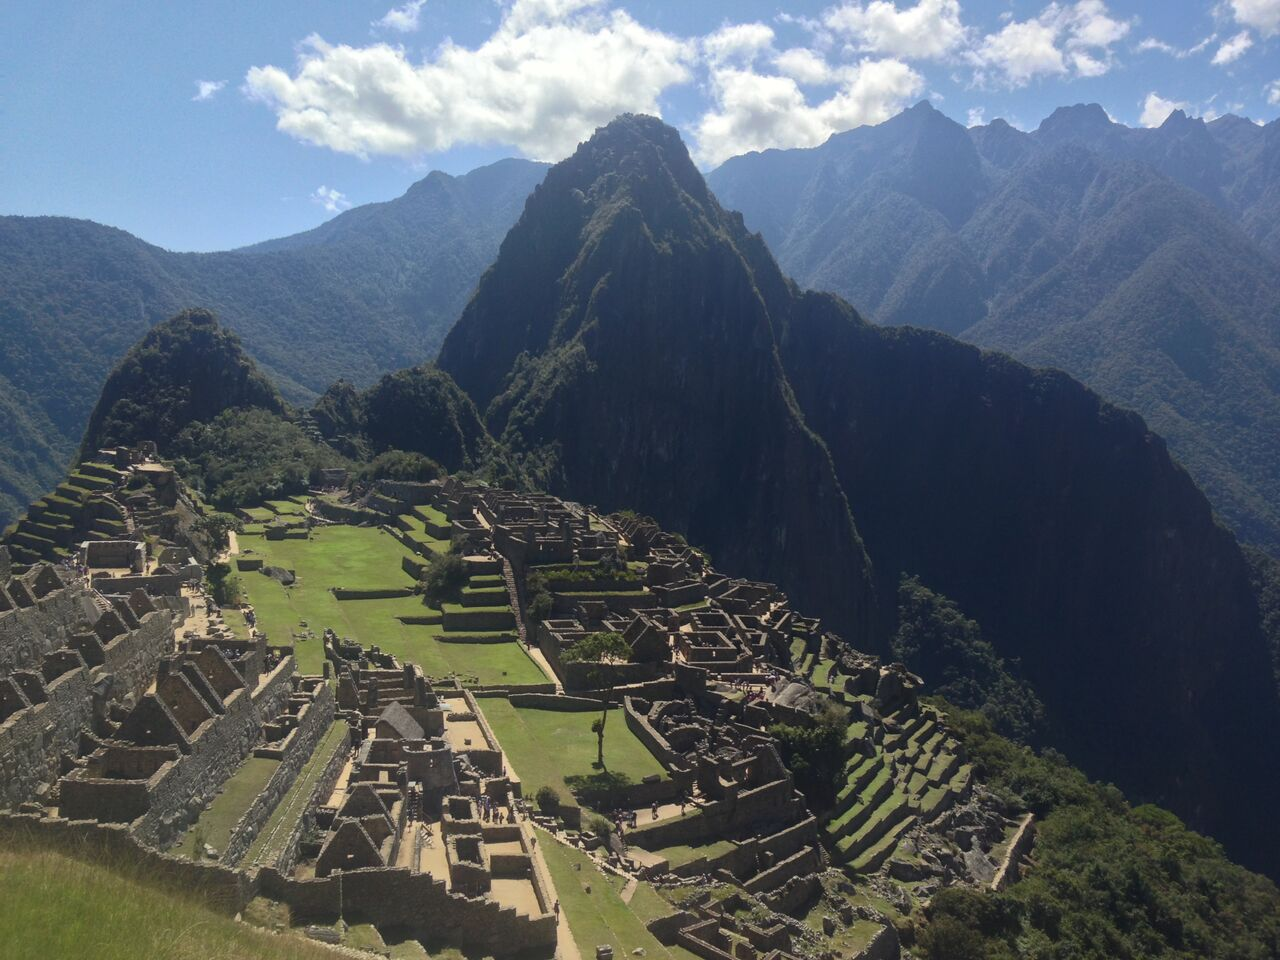 Huayna Picchu vs. Machu Picchu Mountain: Which One is For You?